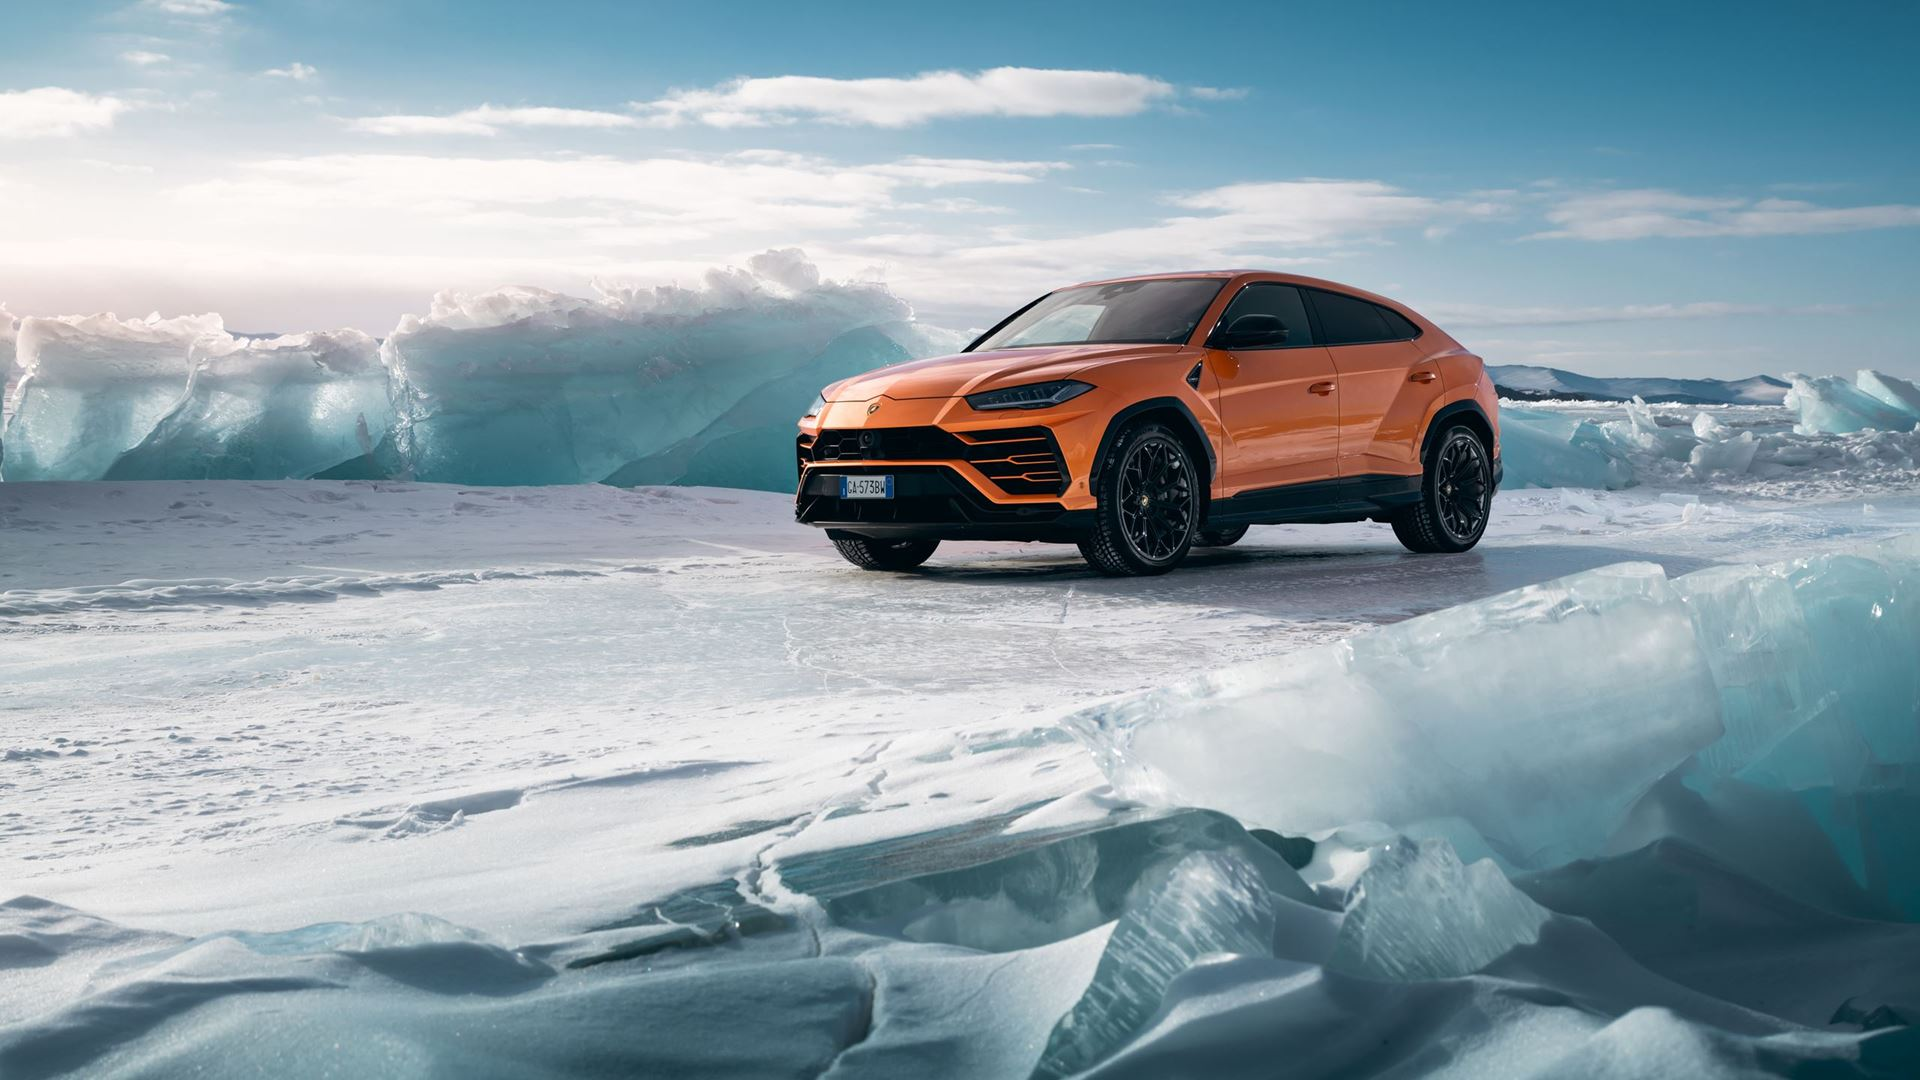 Lamborghini Urus: 6 driving modes to enjoy the Super SUV in 6 different ways - Image 1